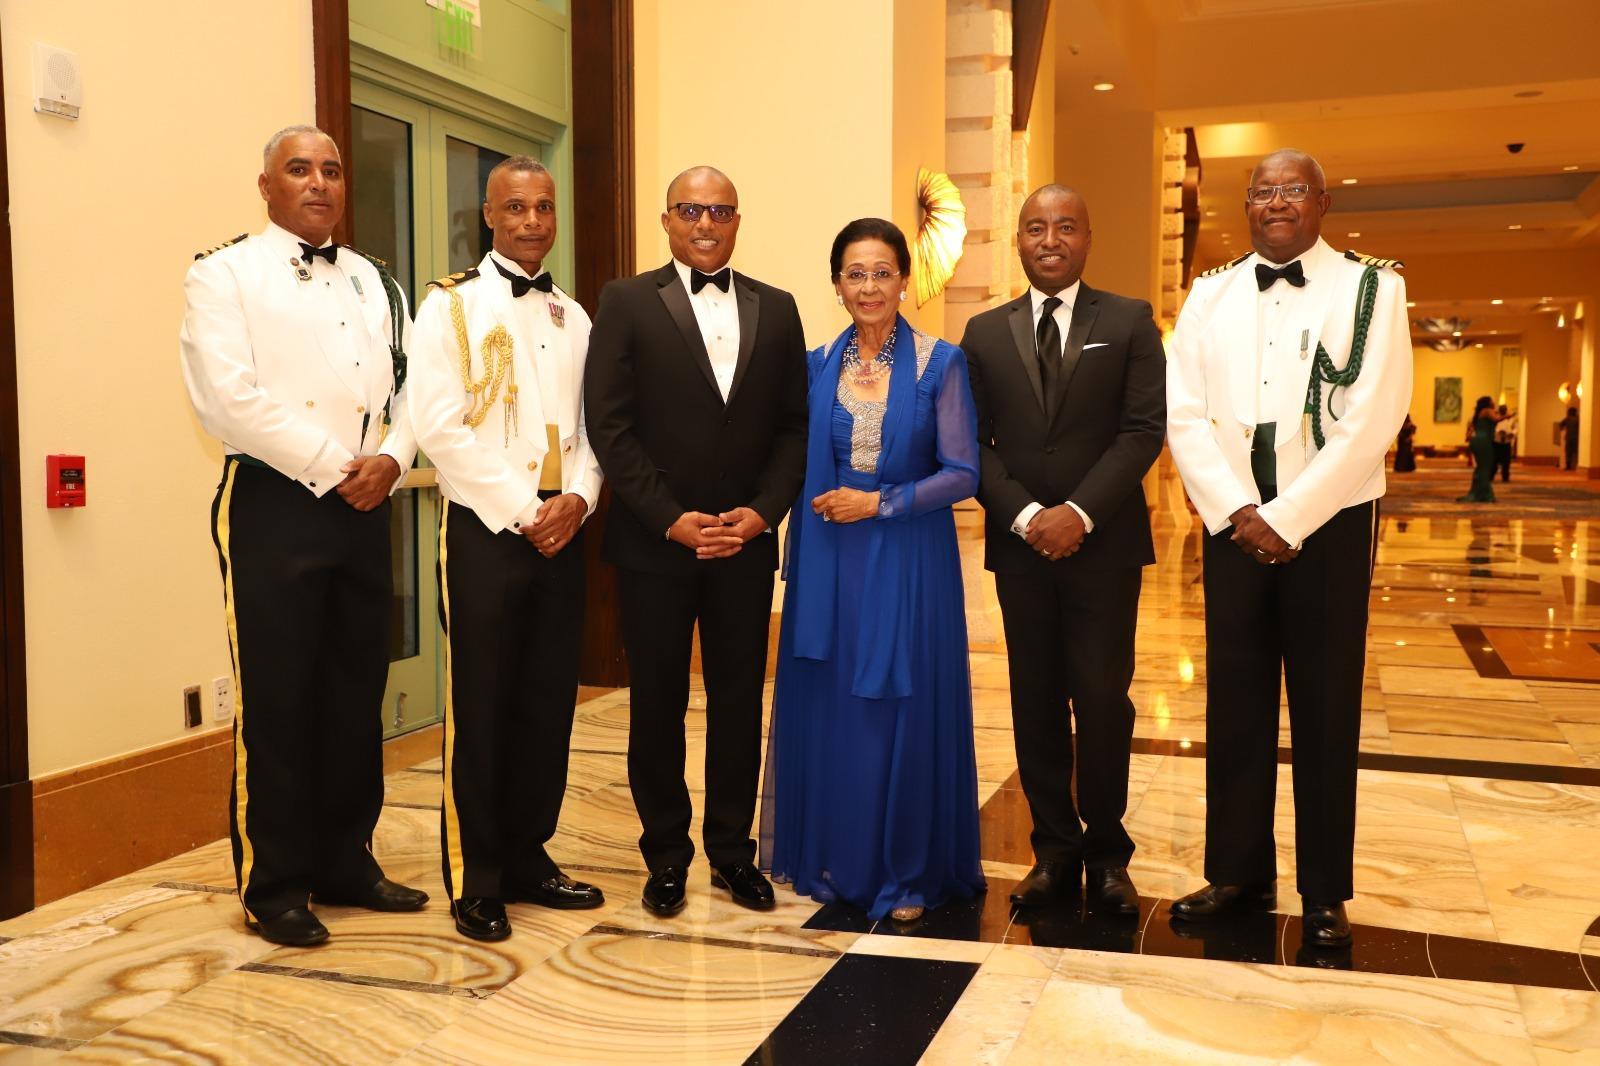 From left: Captain Coral Harbour (Acting), Captain Adrian Chriswell; The Commander Defence Force Commodore Tellis Bethel; the Minister of National Security The Honorable Marvin Dames, the Most Honourable Marguerite Pindling; the Minister of Foreign Affairs, the Honourable Darren Henfield; and Principal Officer, Administration Officer of Commander Defence Force, Captain Clyde Sawyer.